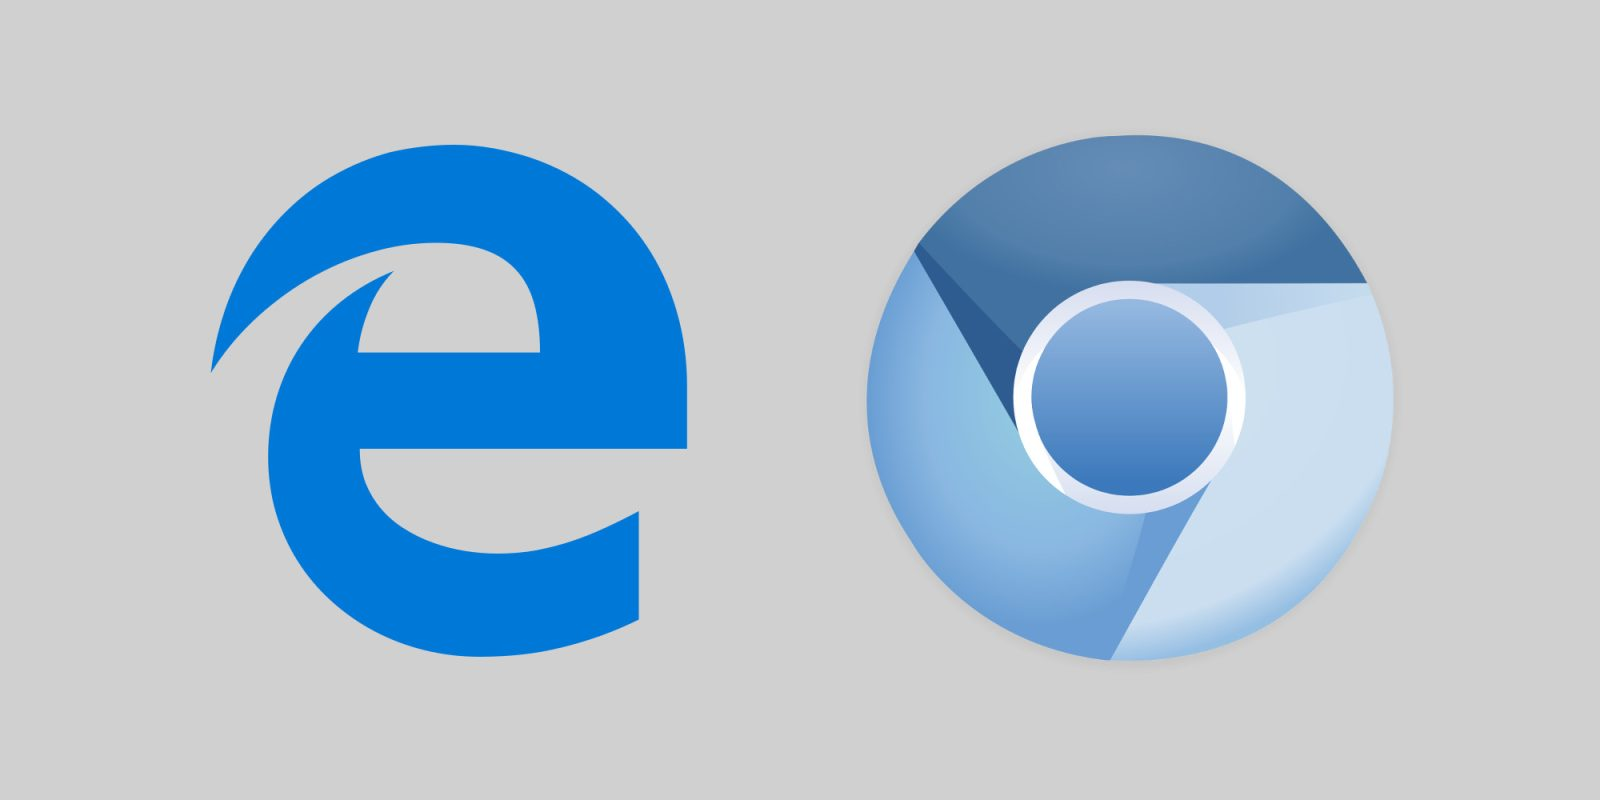 New Microsoft Edge will support Google Chrome extensions - 9to5Google